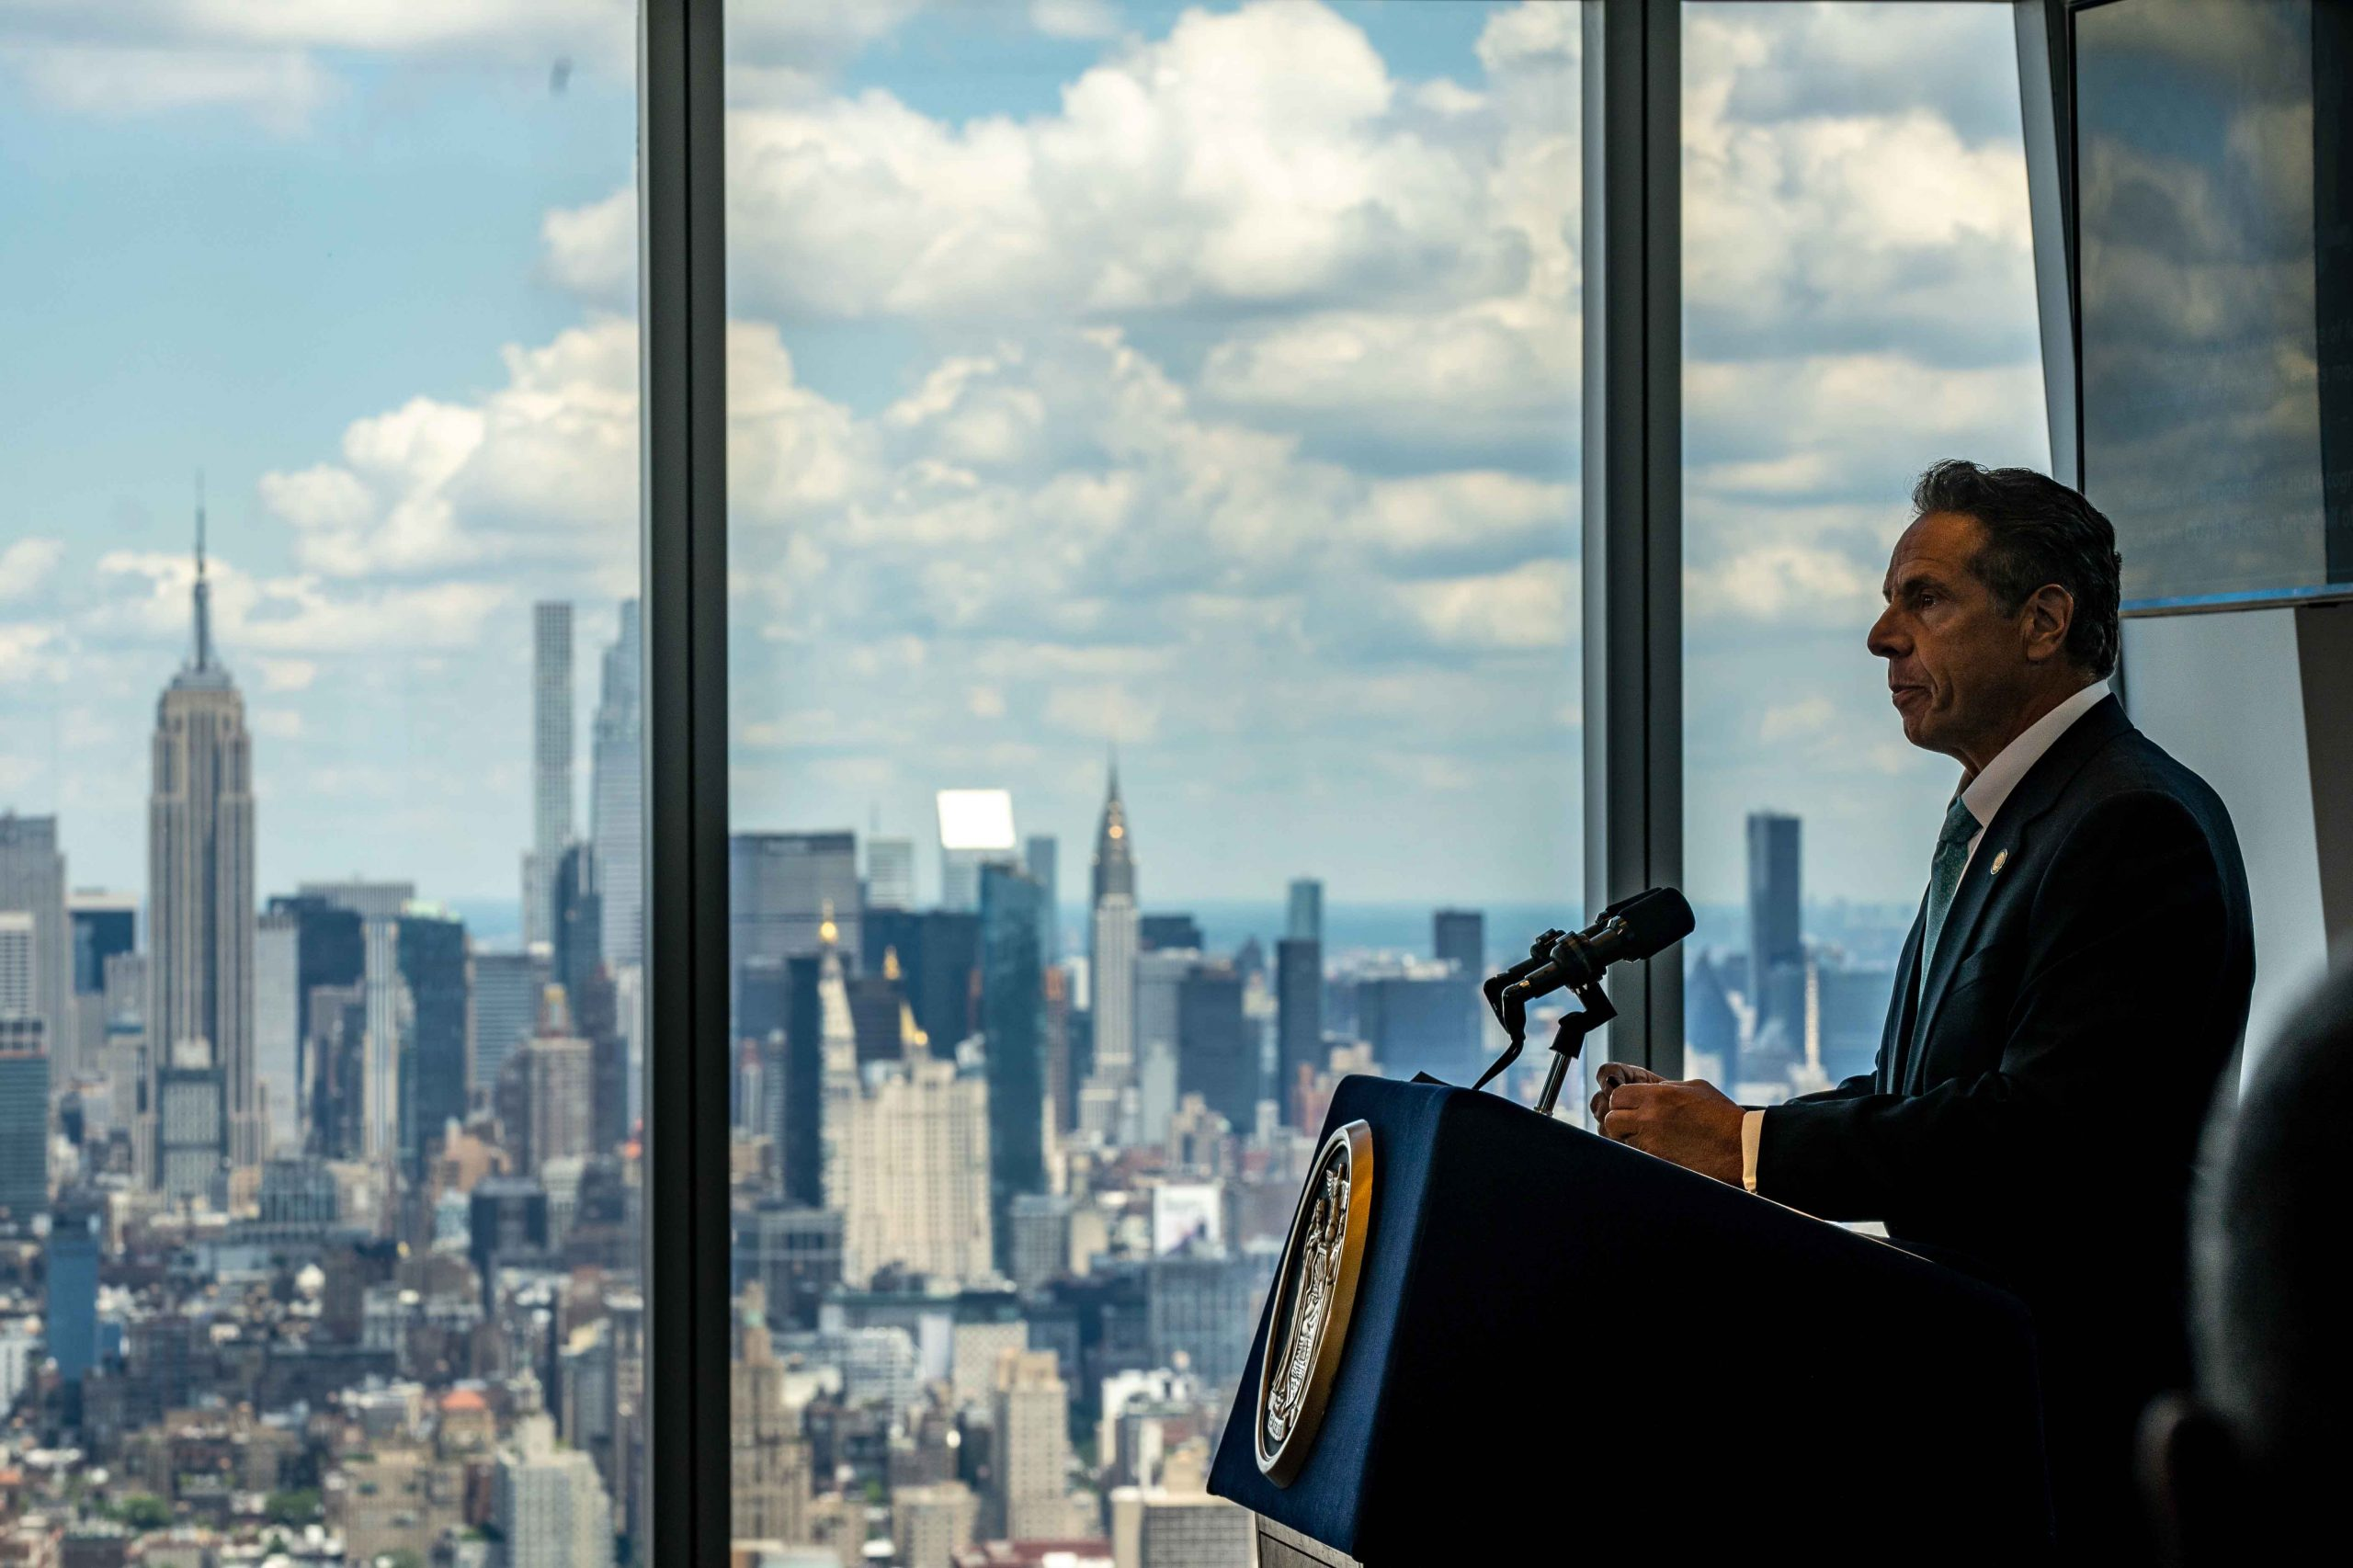 The end of Cuomo's war with New York City? Don't count on it.